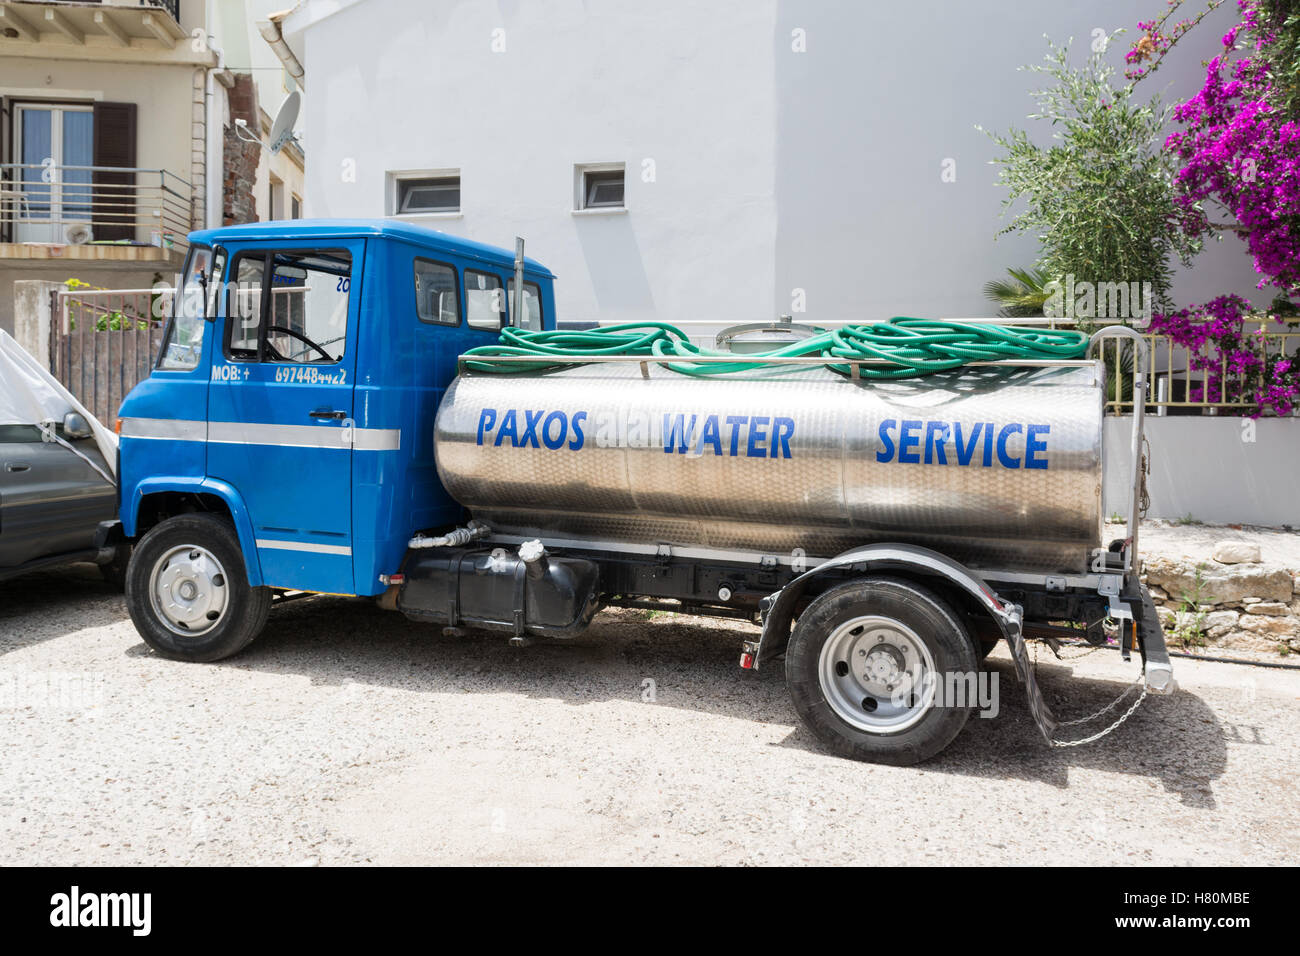 water service lorry in Gaios, Paxos, Greece - Stock Image